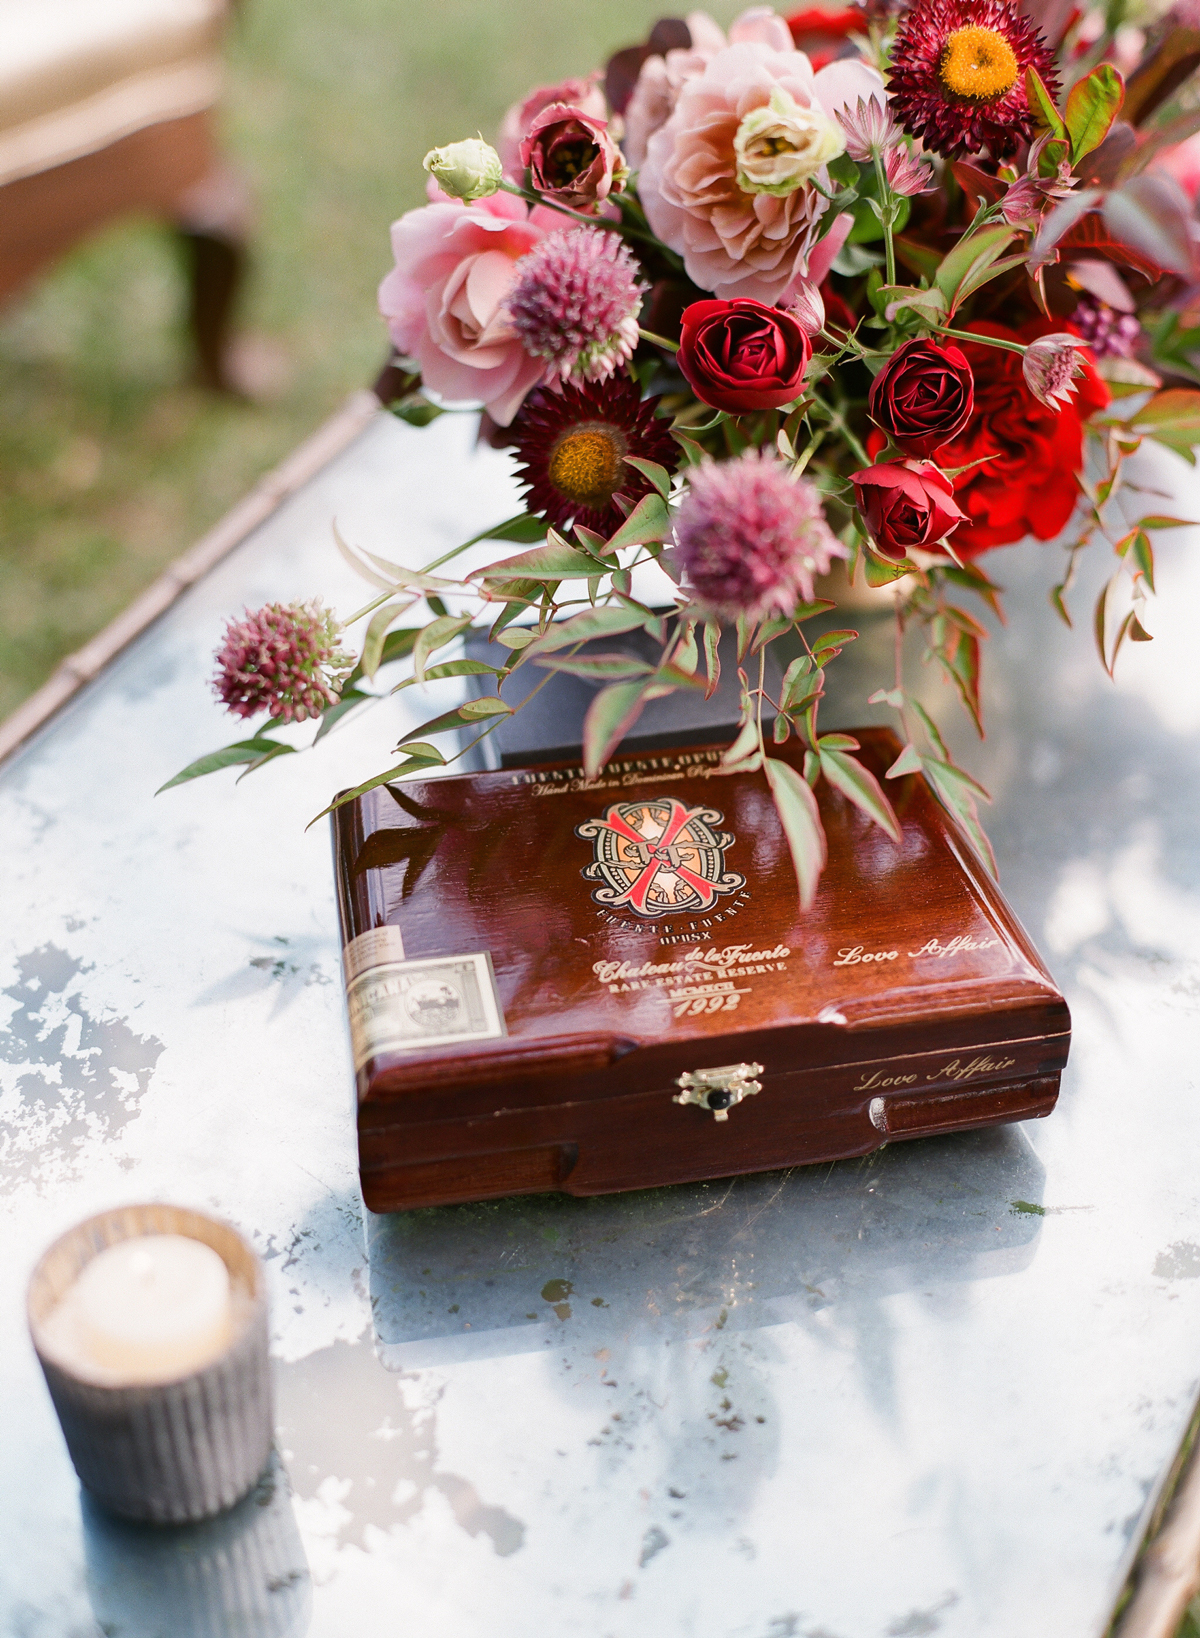 cigar case next to floral arrangement